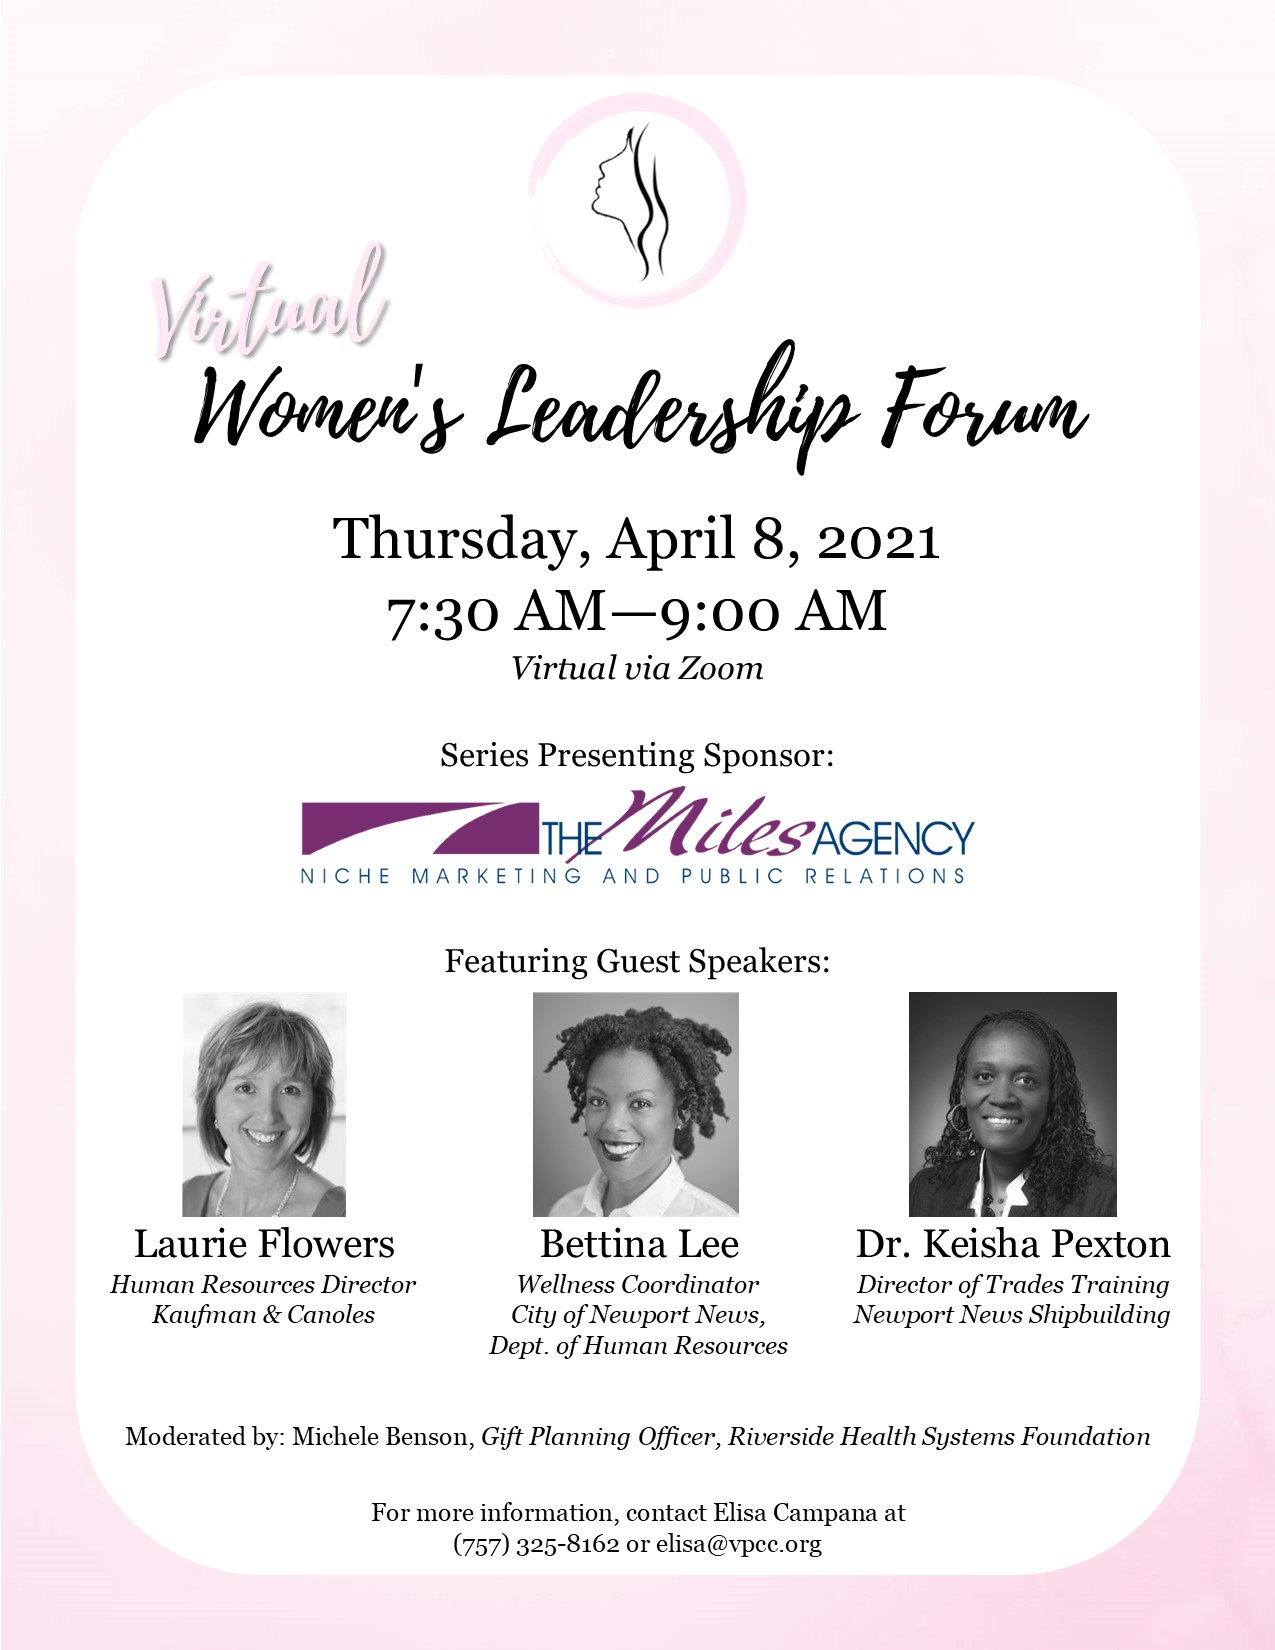 2017-0502-Women's-Leadership-Forum-(FLYER).jpg